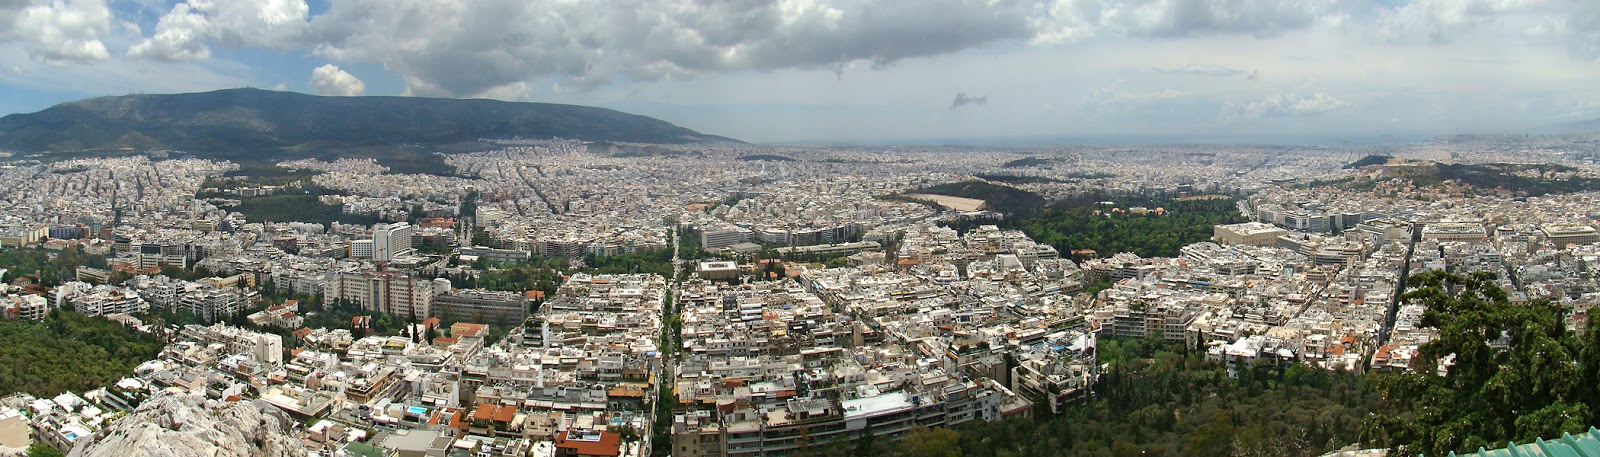 30. Athens, Hellas (Greece) - 30 Best and Most Breathtaking Cityscapes